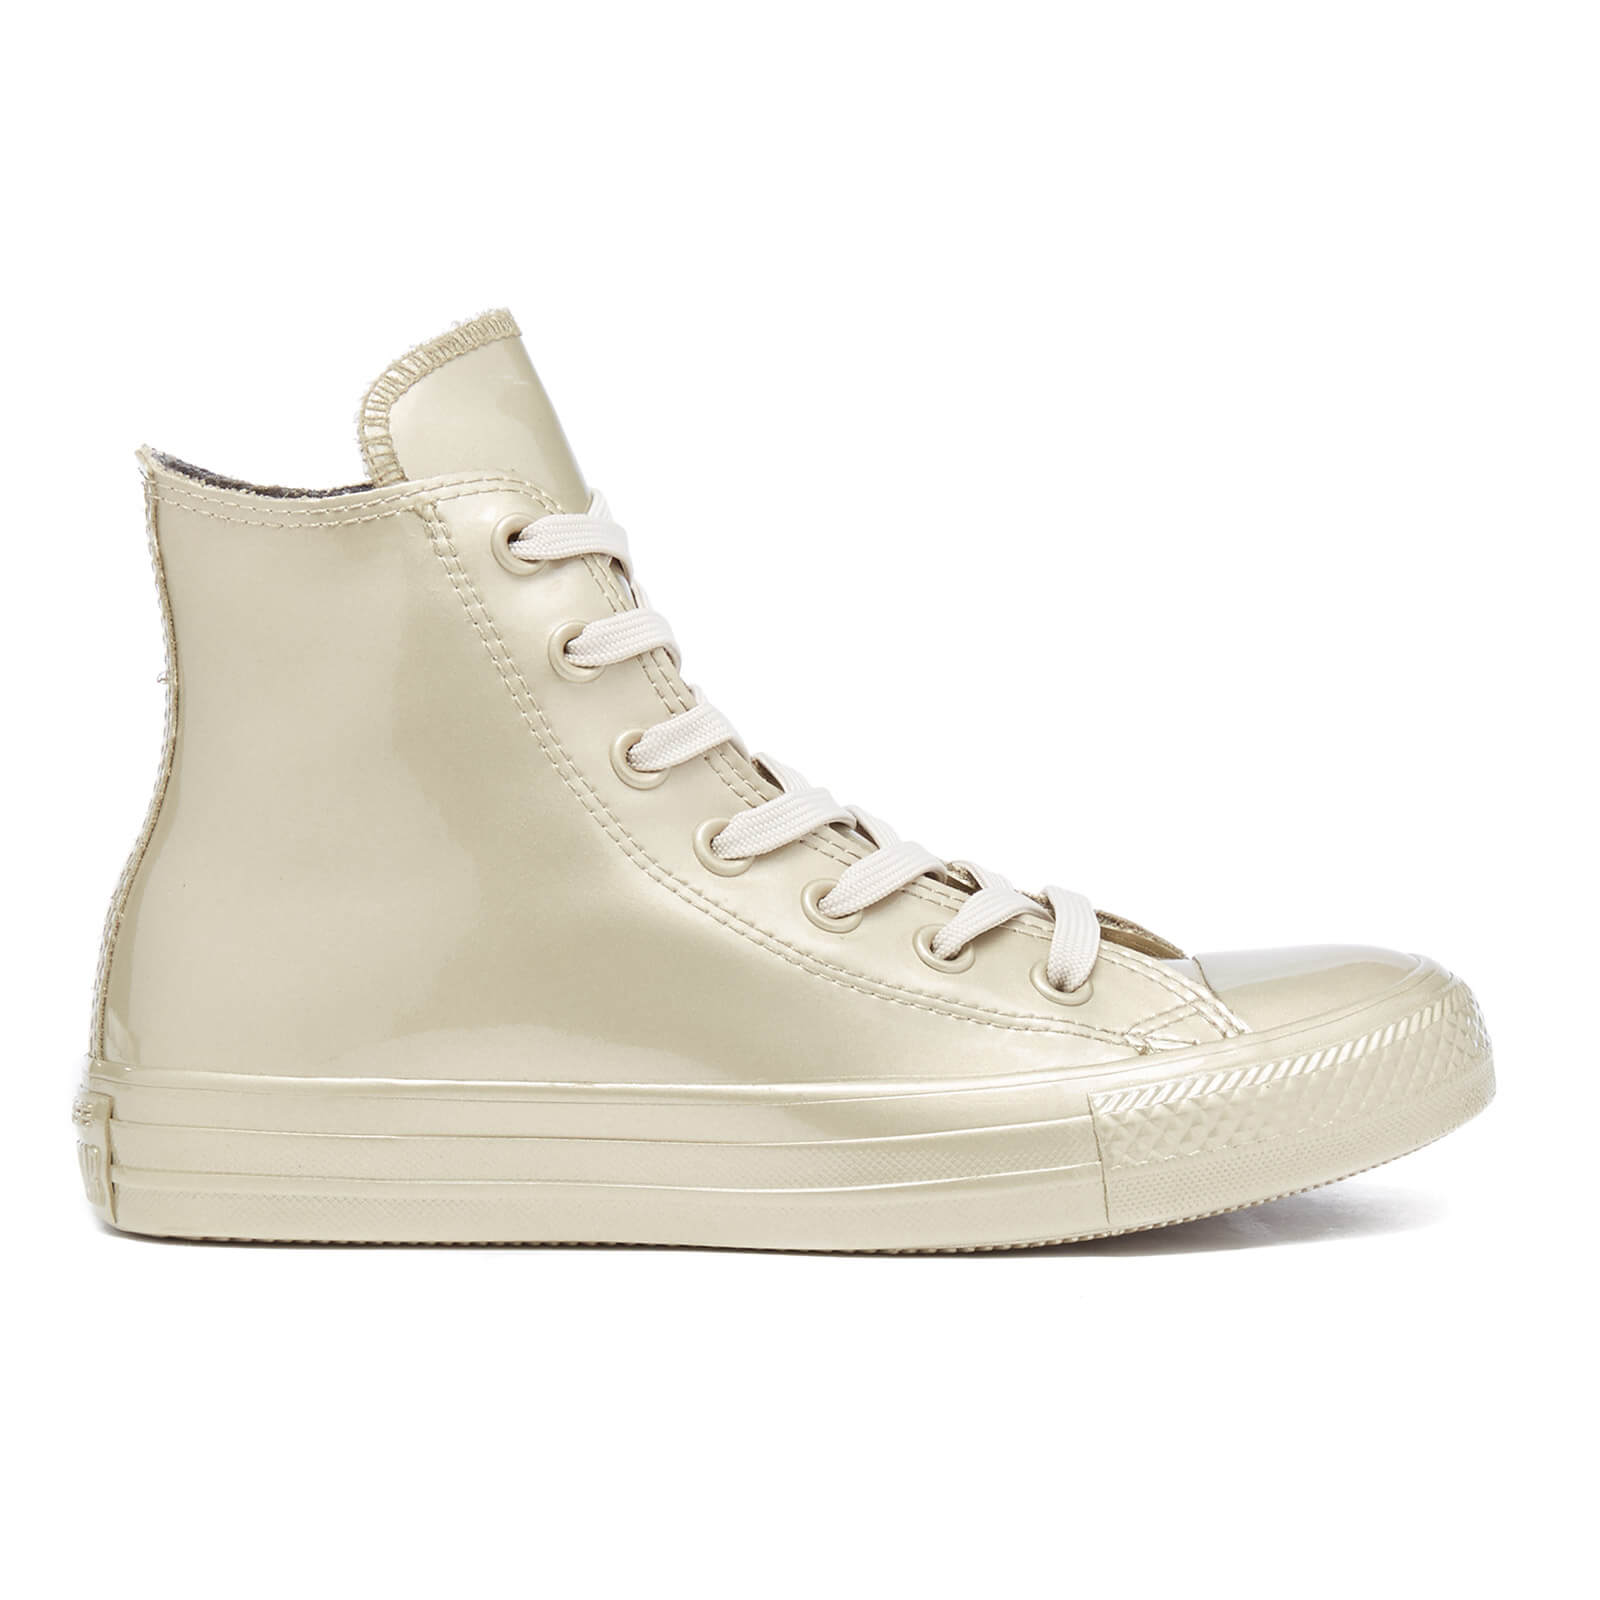 1c8f794bb76a Converse Women s Chuck Taylor All Star Metallic Rubber Hi-Top Trainers - Light  Gold Light Gold Light Gold - Free UK Delivery over £50